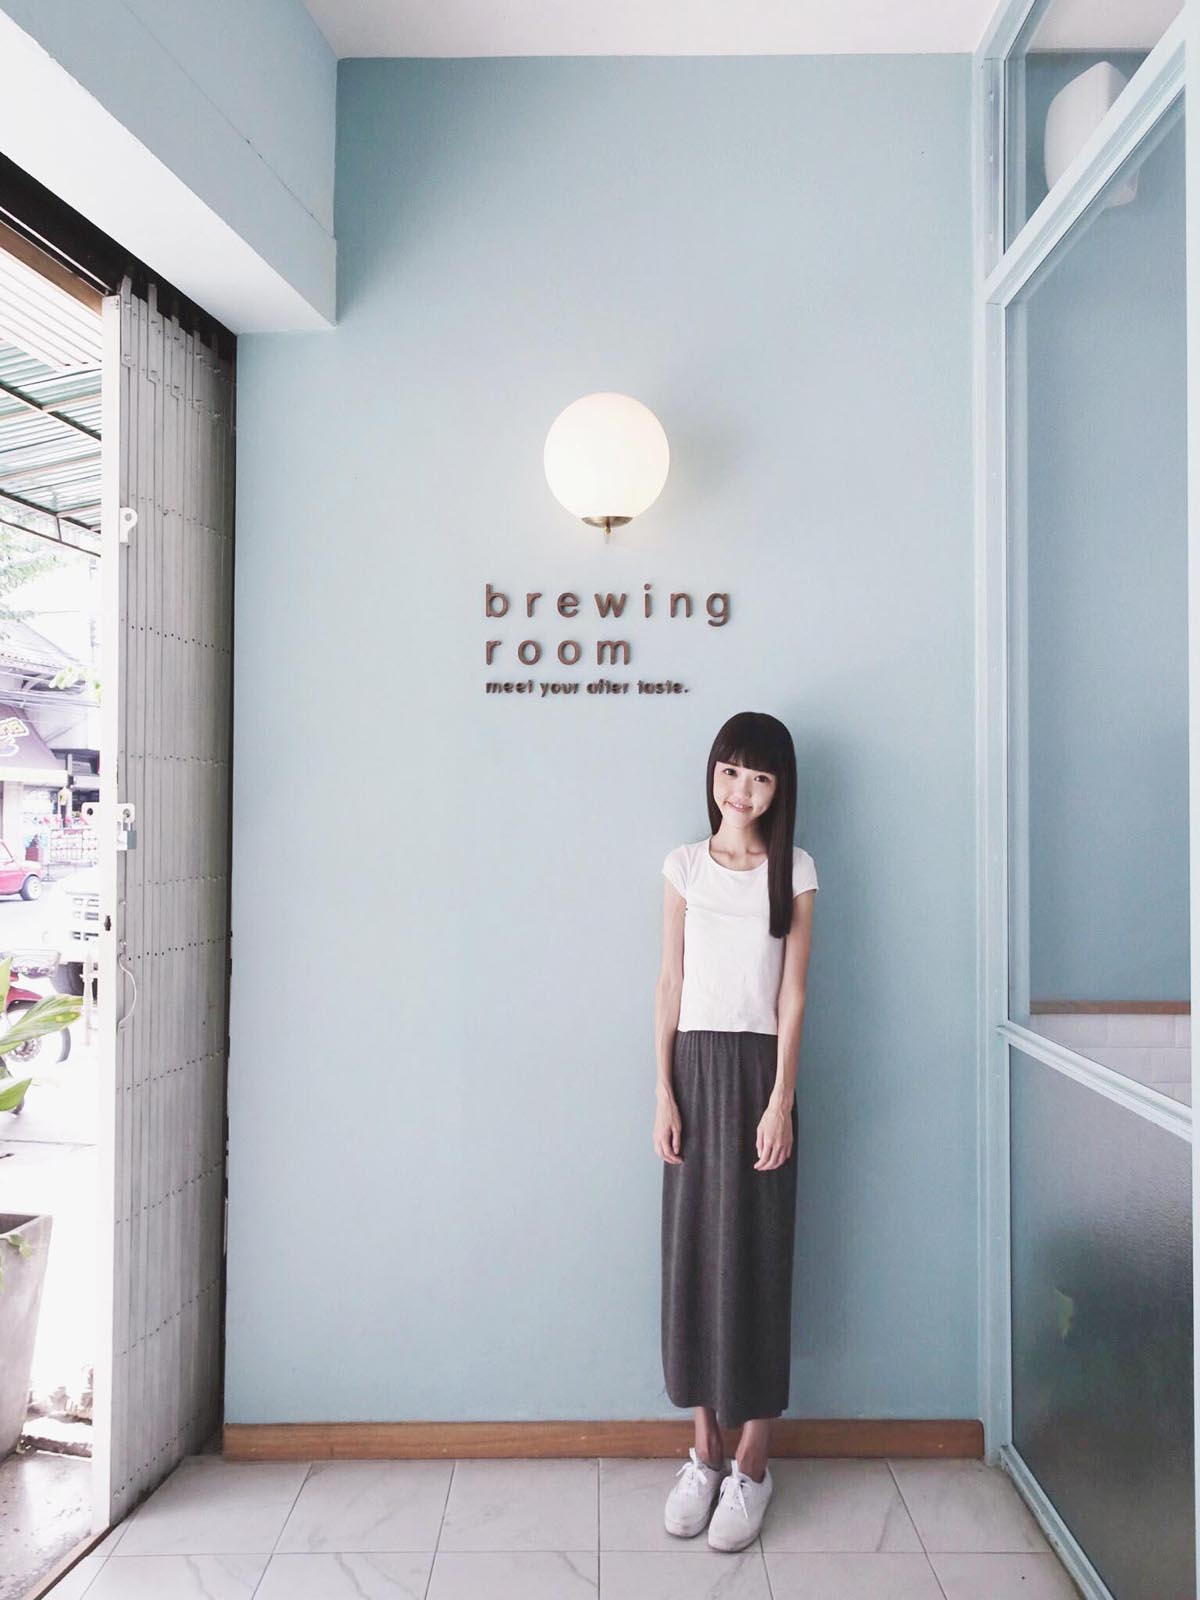 Brewing Room in Chiang Mai, Thailand